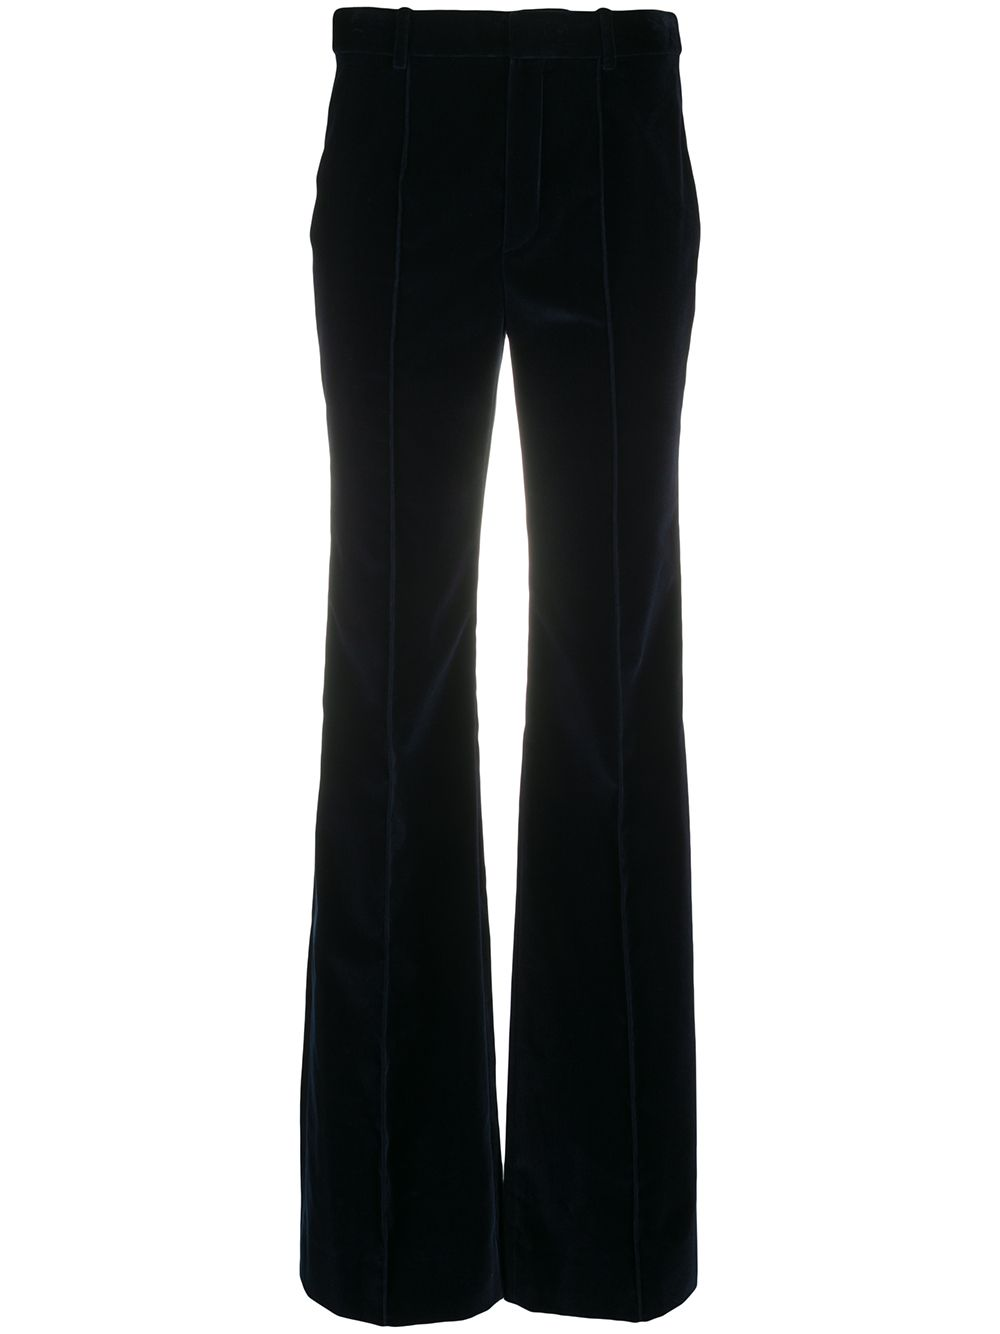 Velvet-Effect Flared Trousers